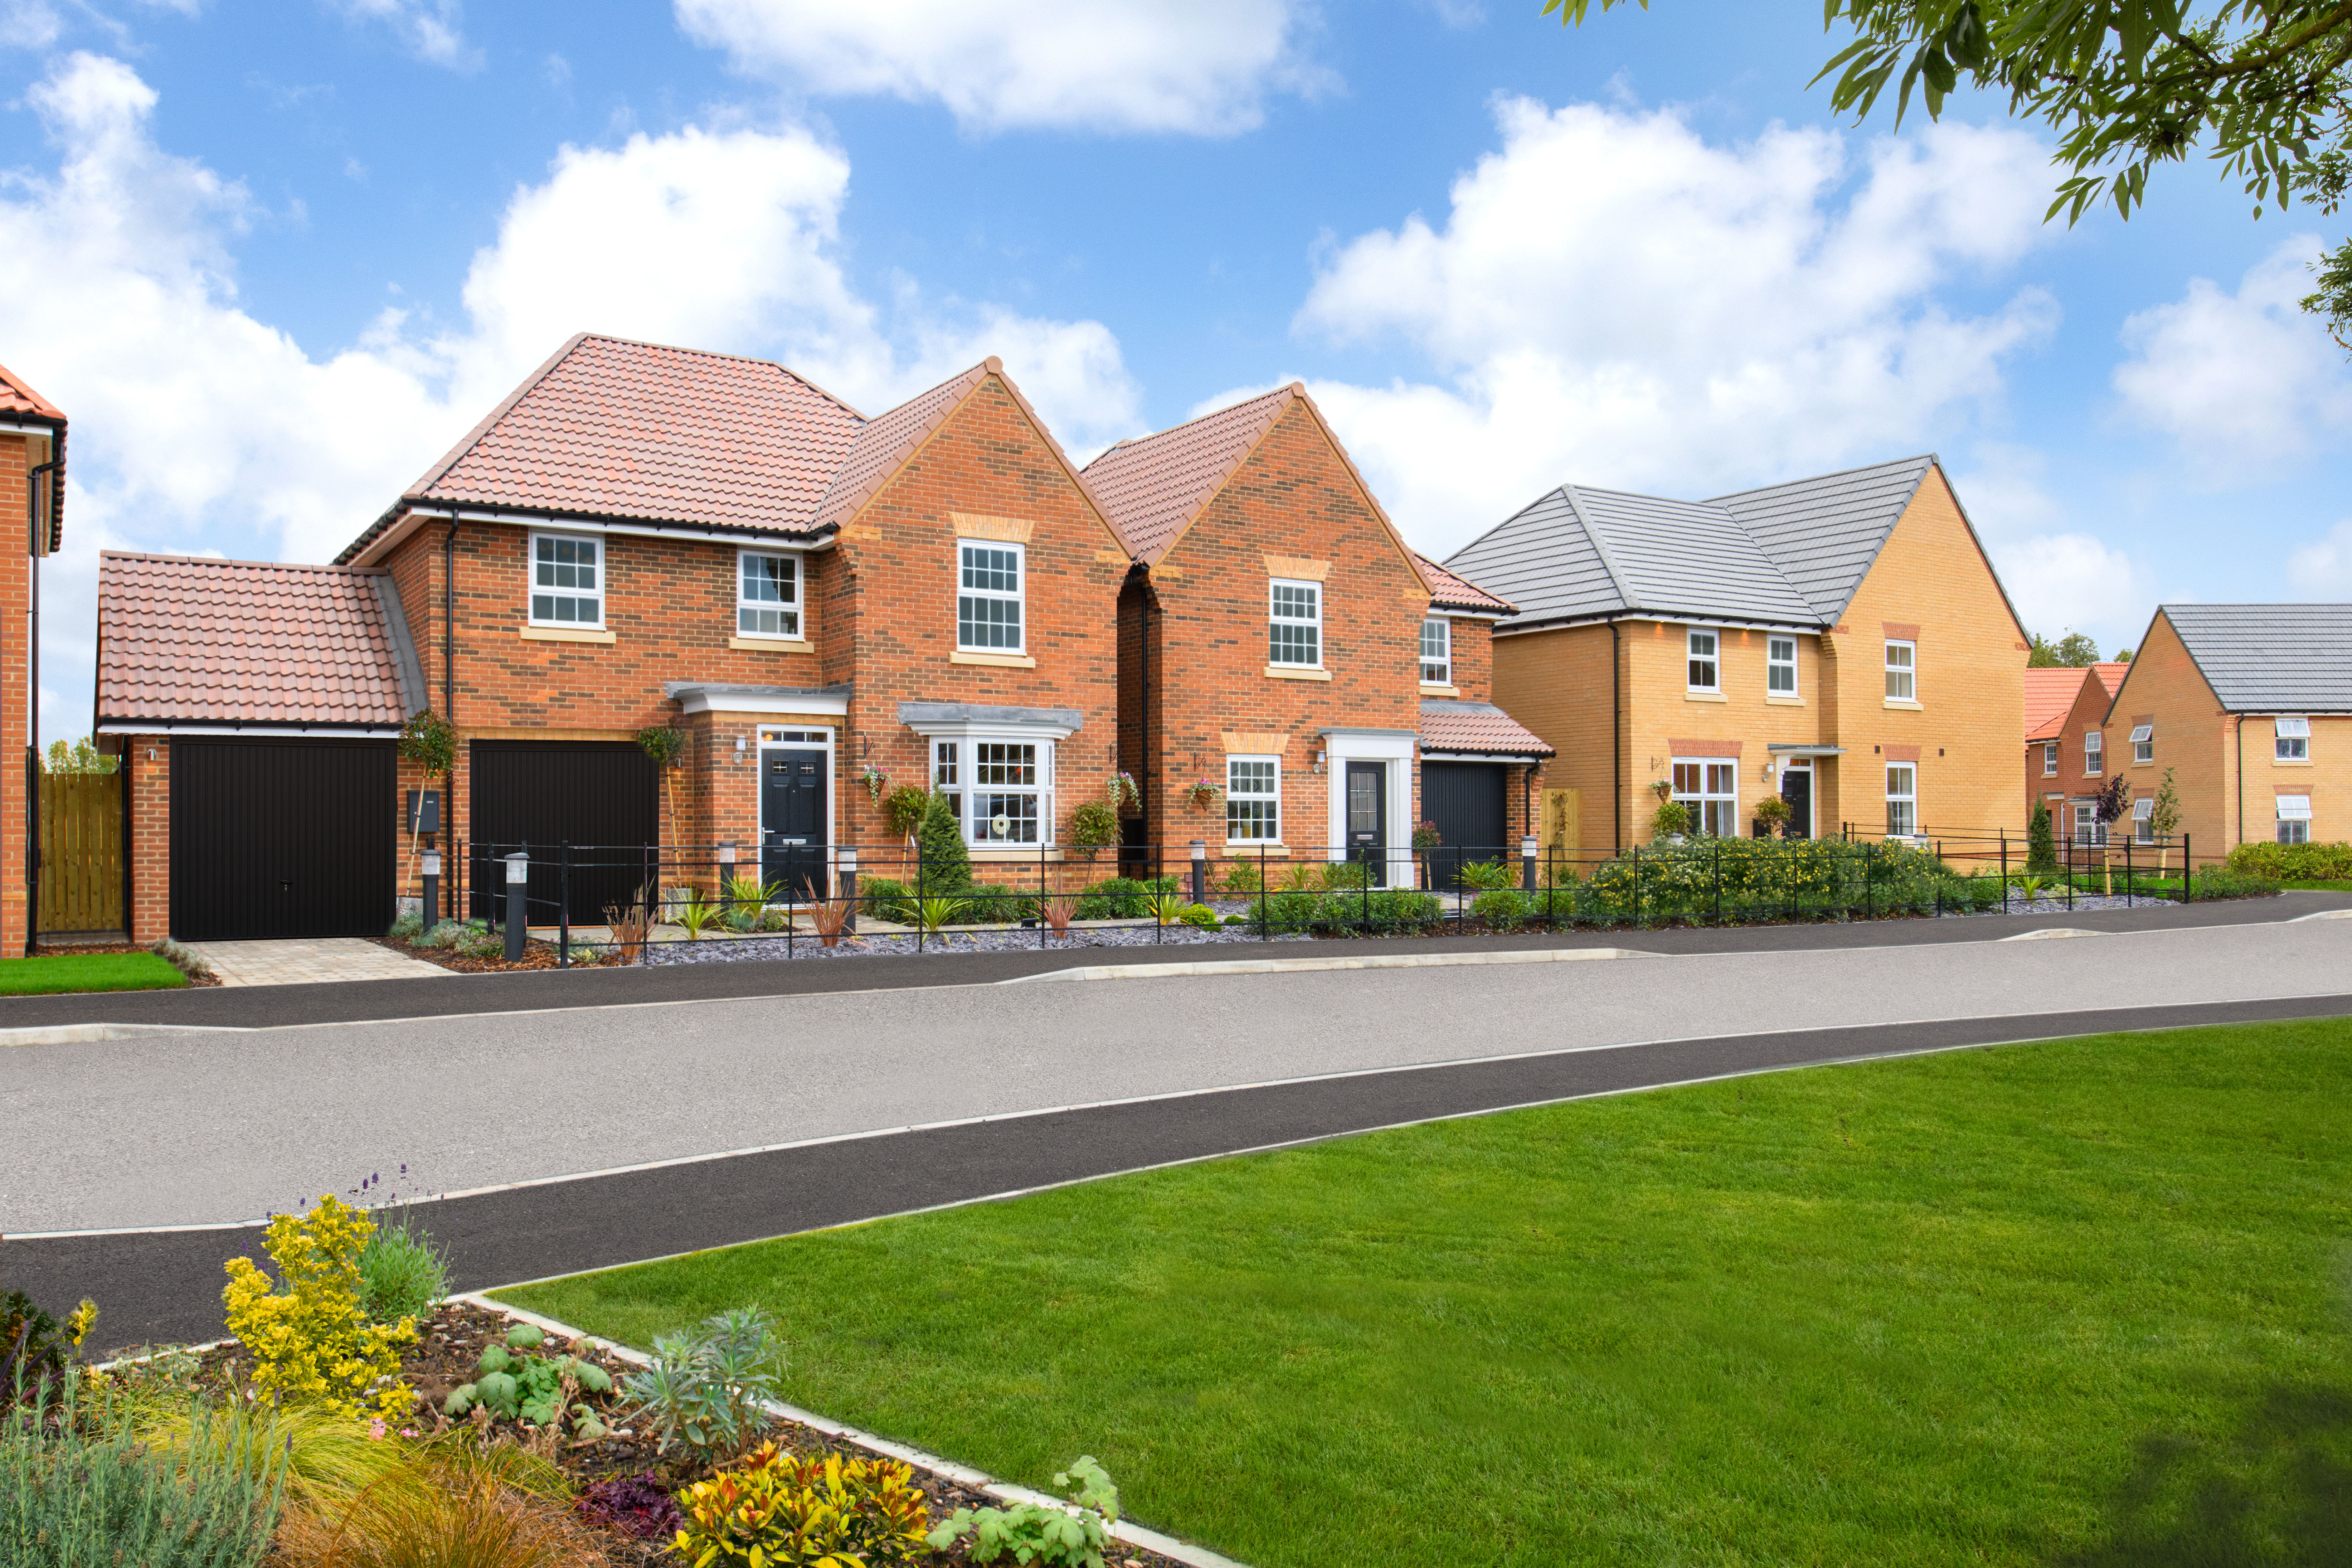 Hesslewood Park Show Homes opposite green open space